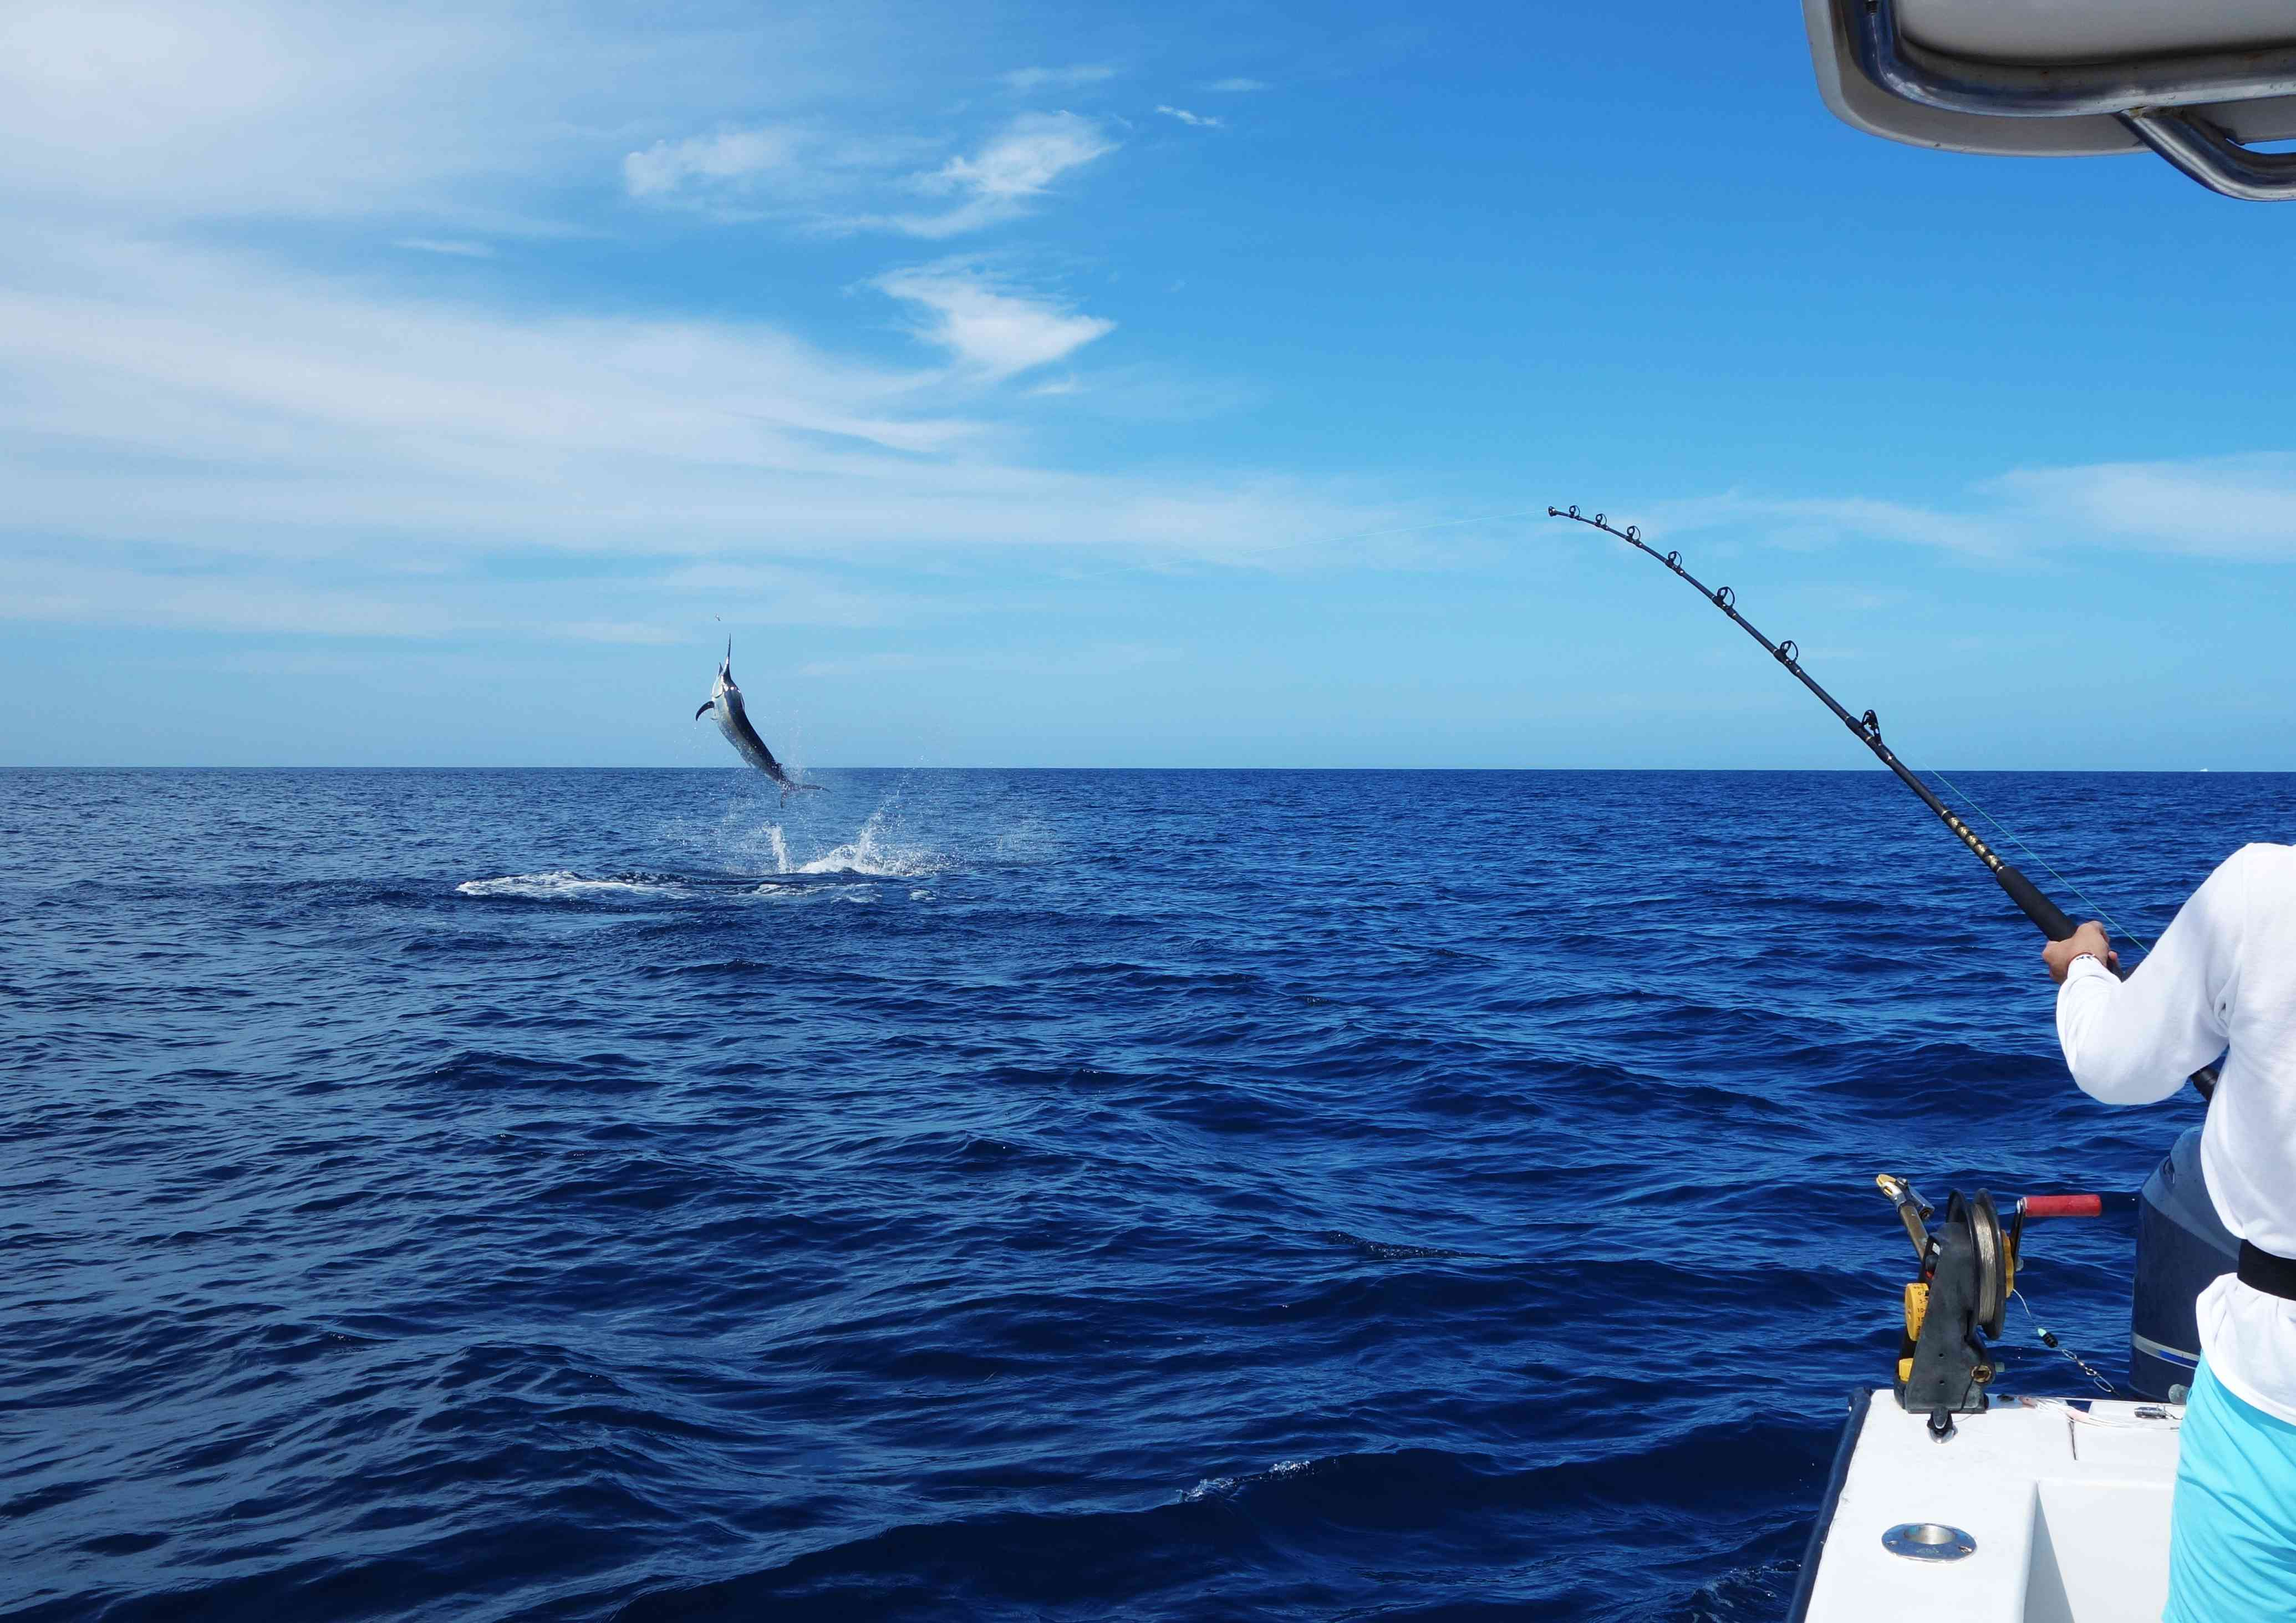 A person holds a fishing pole over the ocean as a marlin leaps above the horizon line